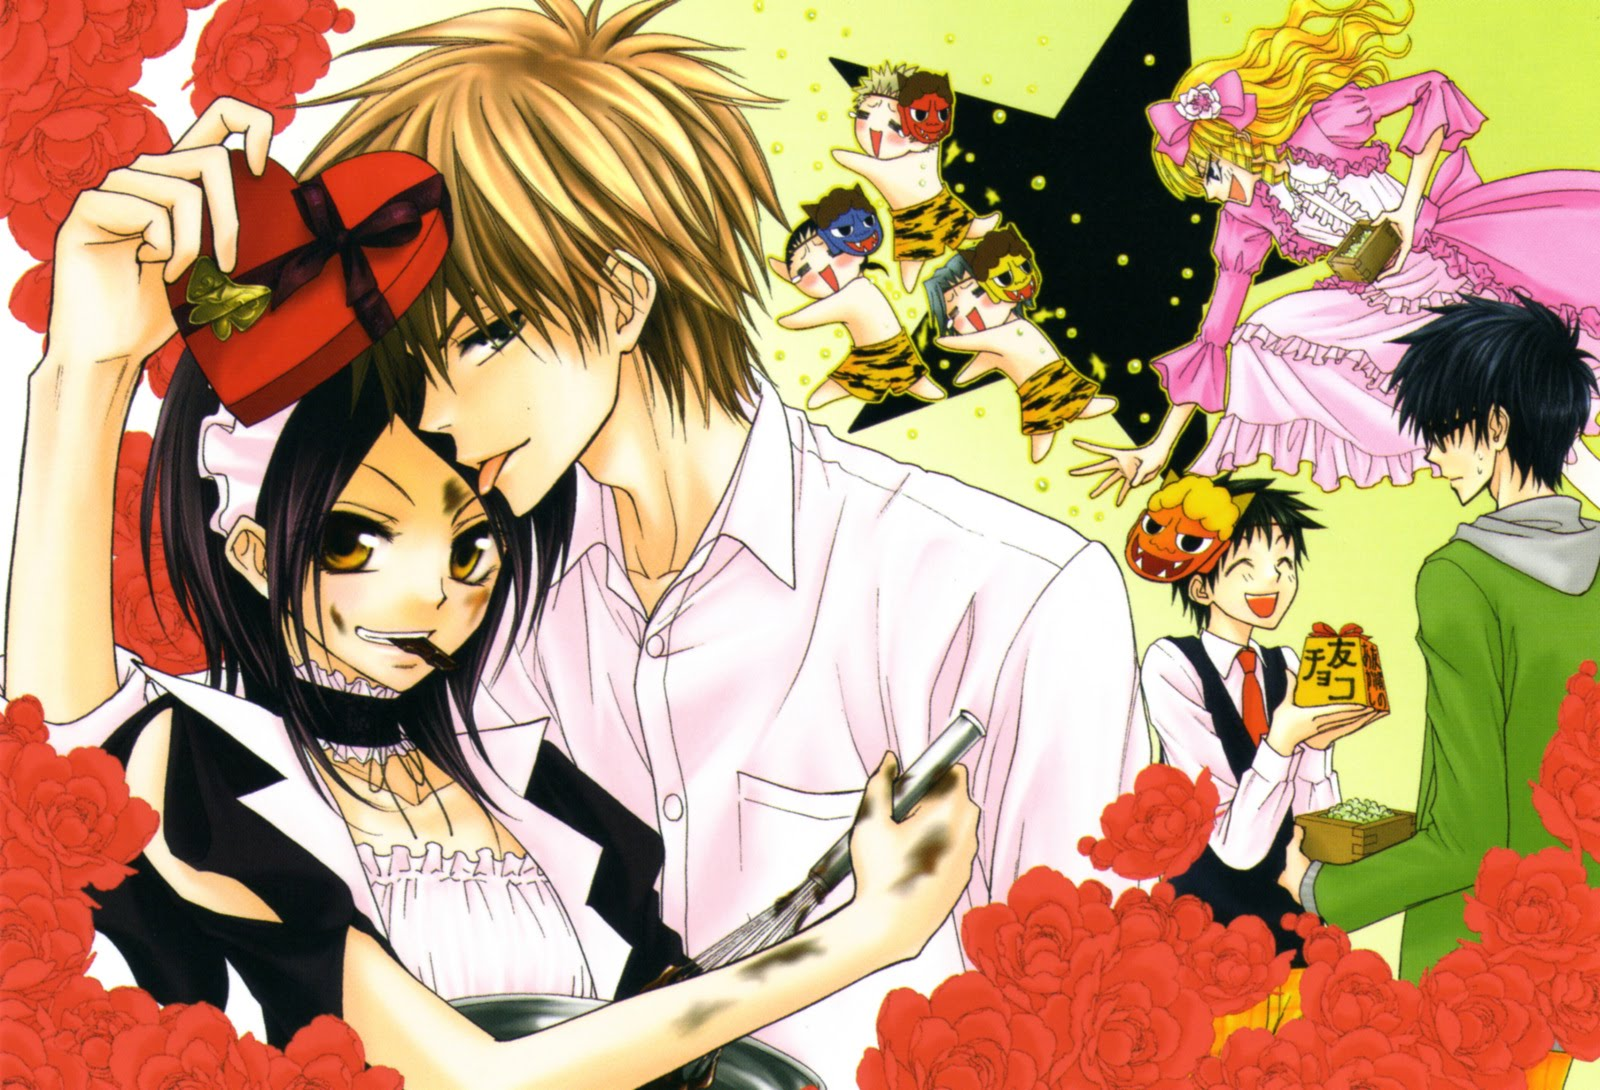 Anime Lovers: Maid Sama